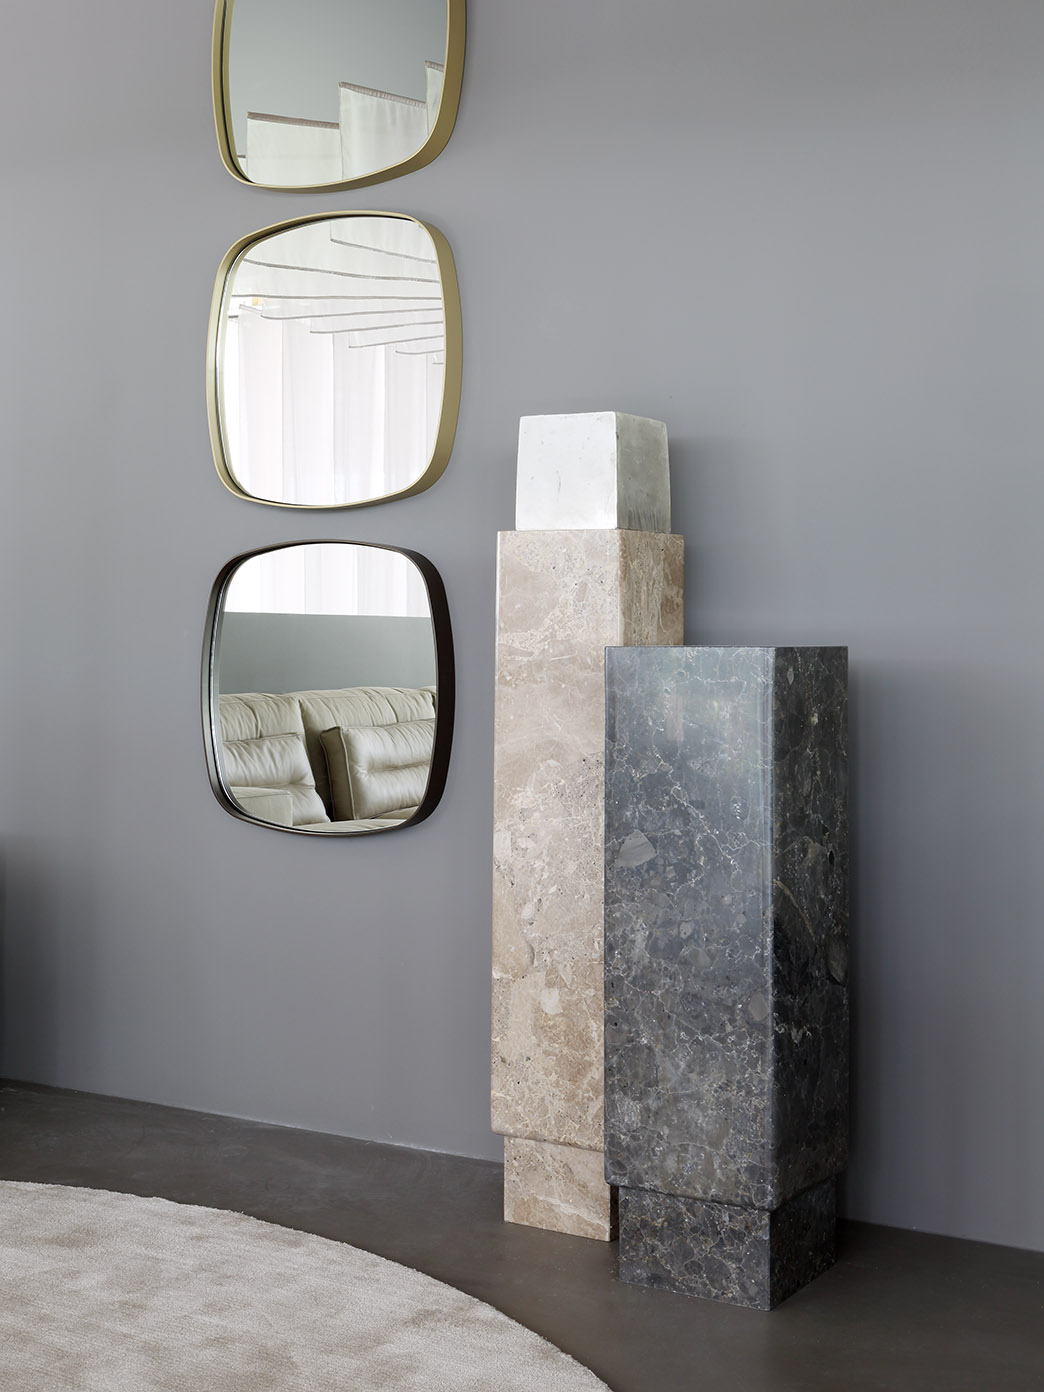 Piet Boon Collection KEKKE spiegel | Baden Baden Interior